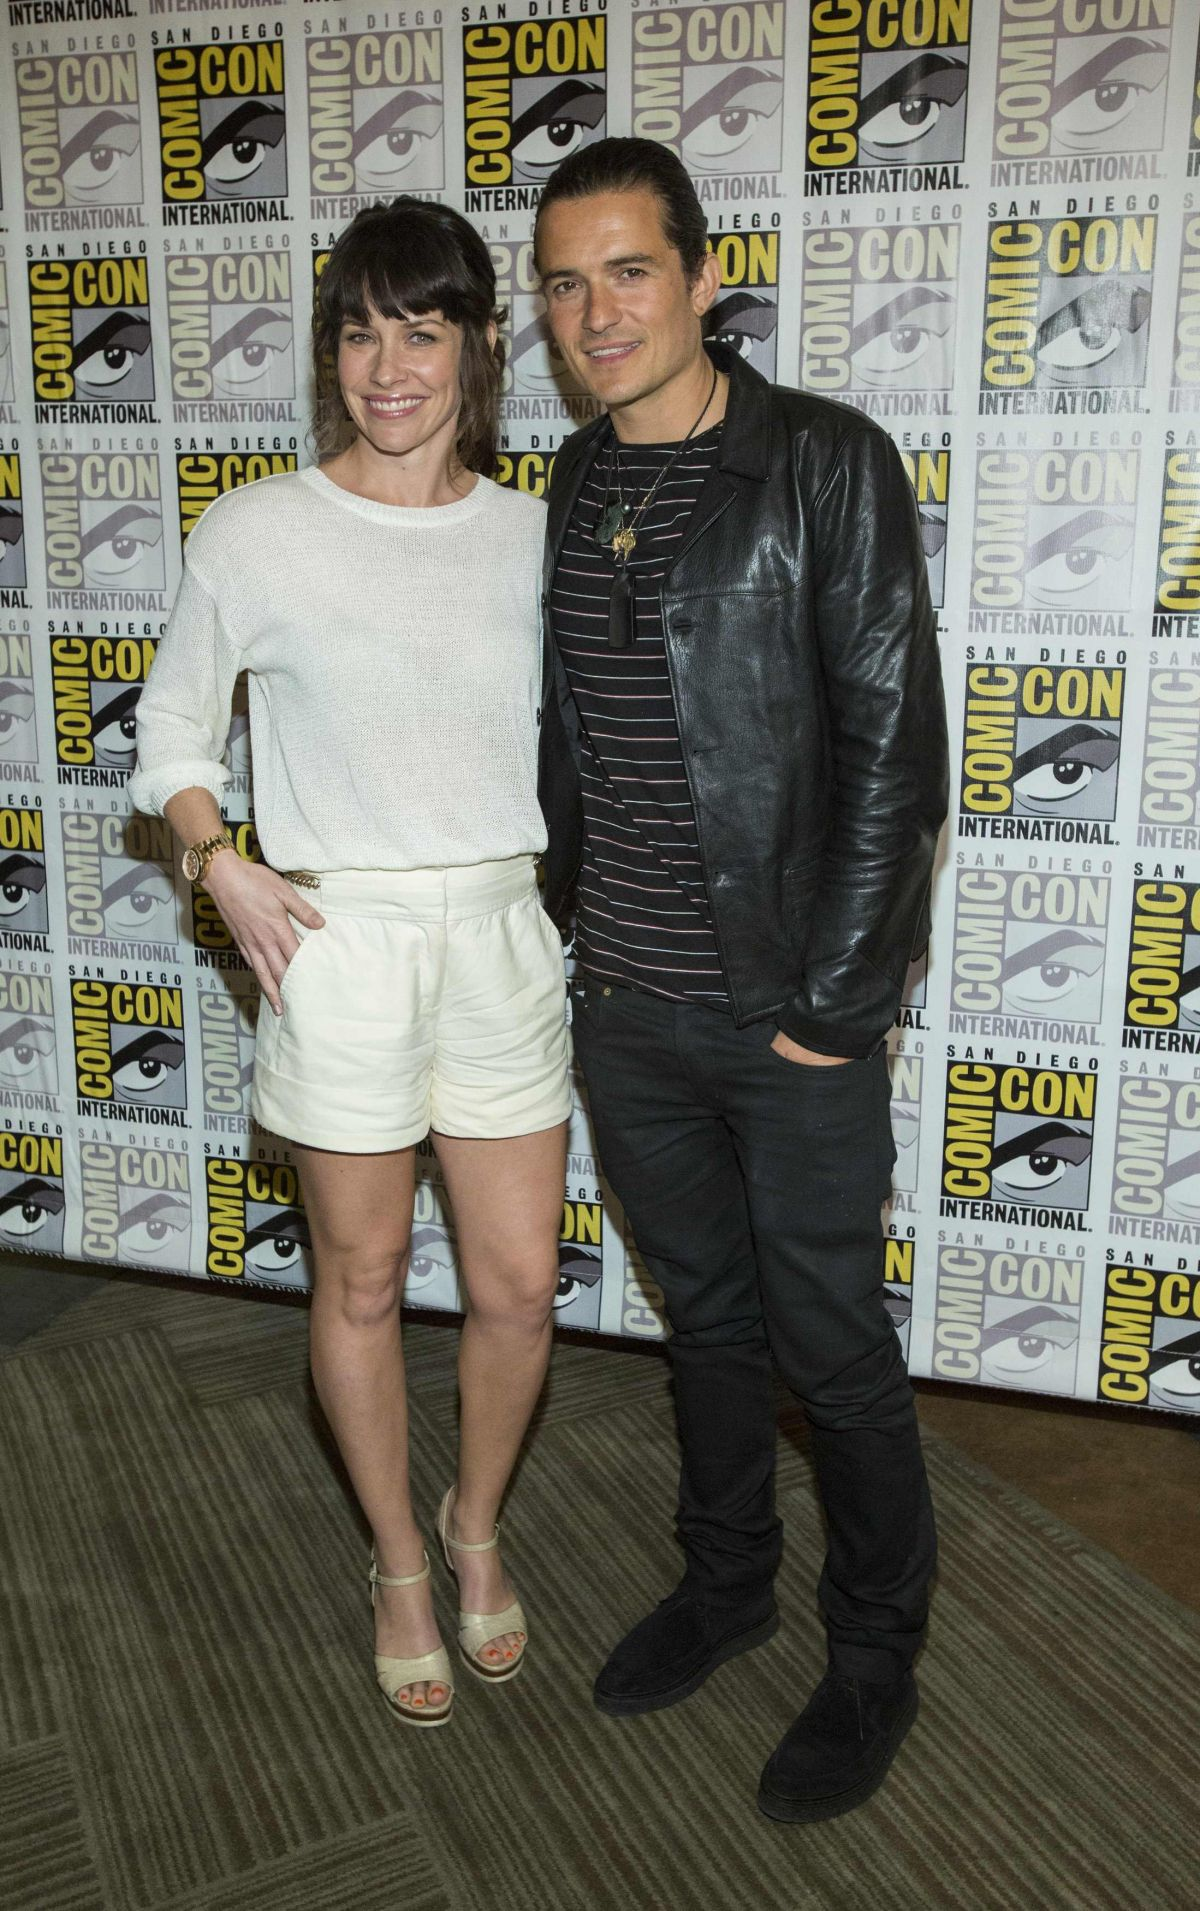 EVANGELINE LILLY at Legendary Pictures Panel at Comic-con